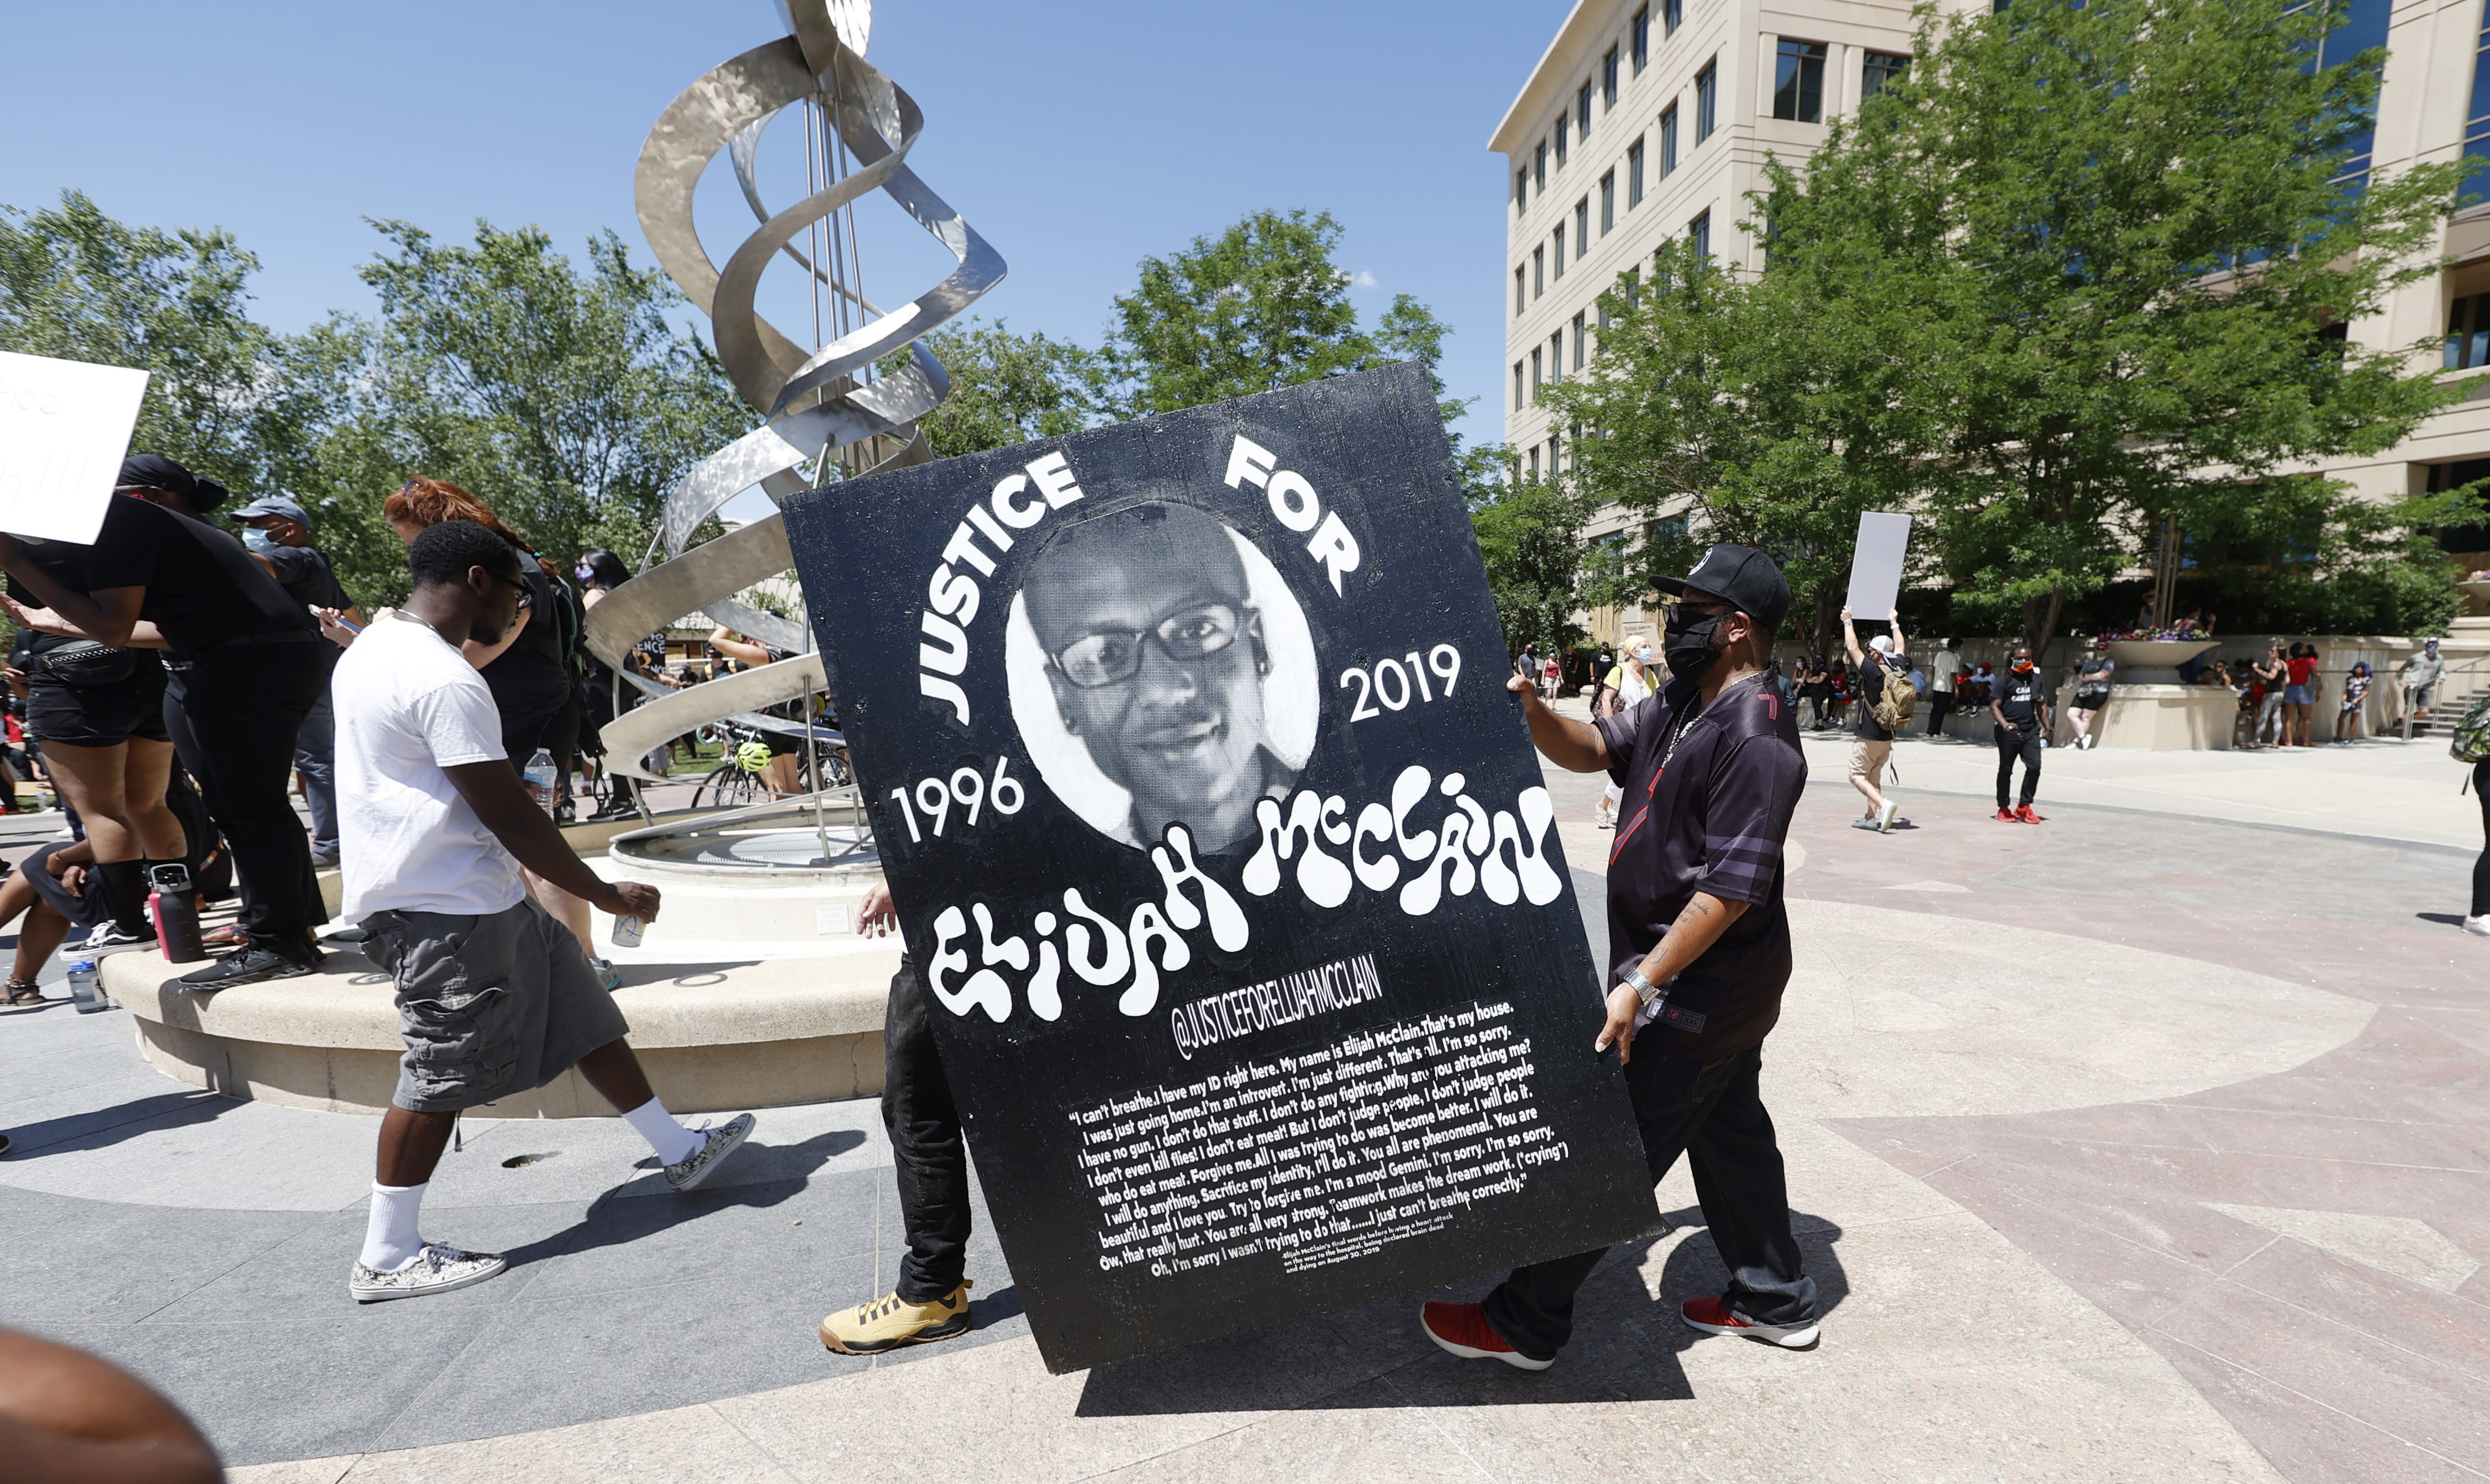 FILE - In this June 27, 2020, file photo, demonstrators carry a giant placard during a rally and march over the death of 23-year-old Elijah McClain outside the police department in Aurora, Colo. A drug called ketamine that's injected as a sedative during arrests has drawn new scrutiny since a young Black man named Elijah McClain died in suburban Denver. An analysis by The Associated Press of policies on ketamine and cases where it was used nationwide uncovered a lack of police training, conflicting medical standards and nonexistent protocols that have resulted in hospitalizations and even deaths. (AP Photo/David Zalubowski, File)